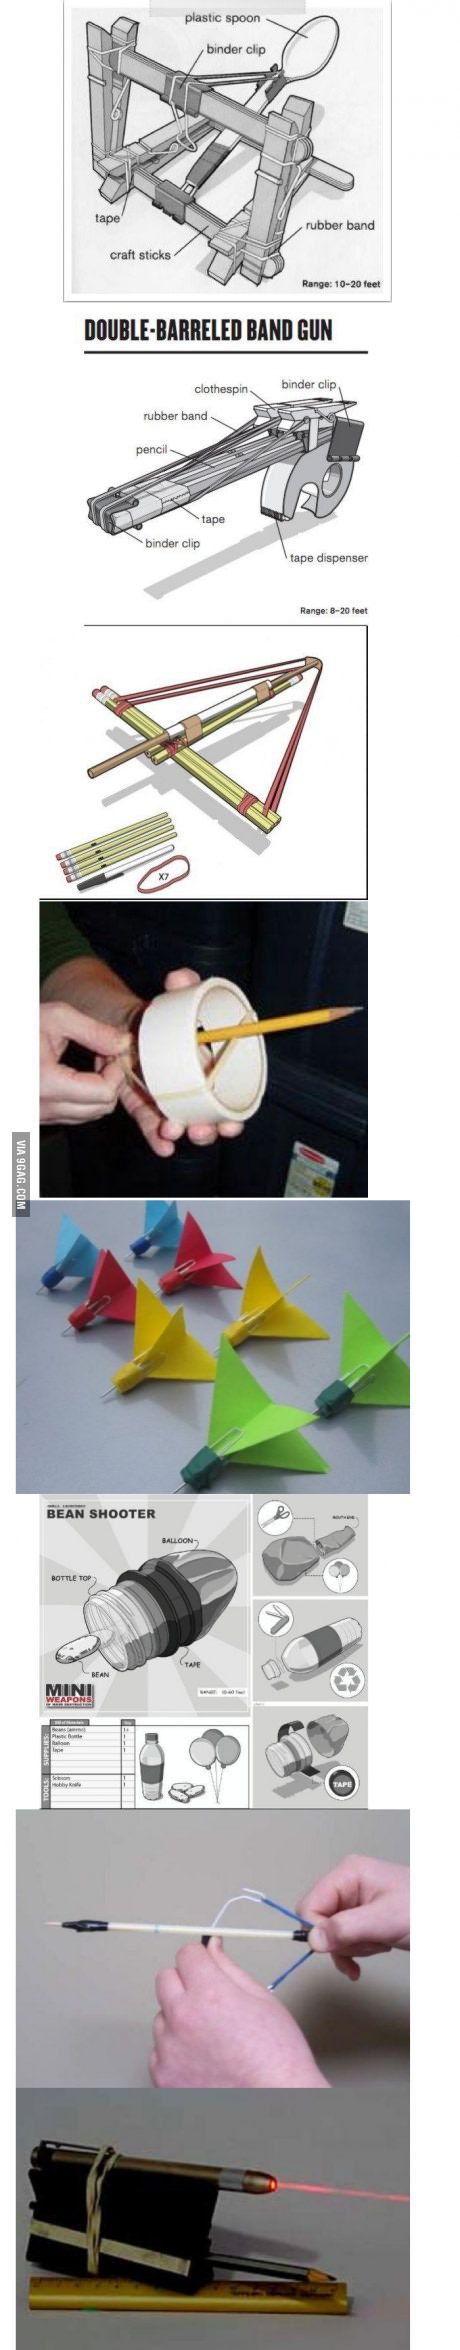 1000+ ideas about Cool Office Supplies on Pinterest ...